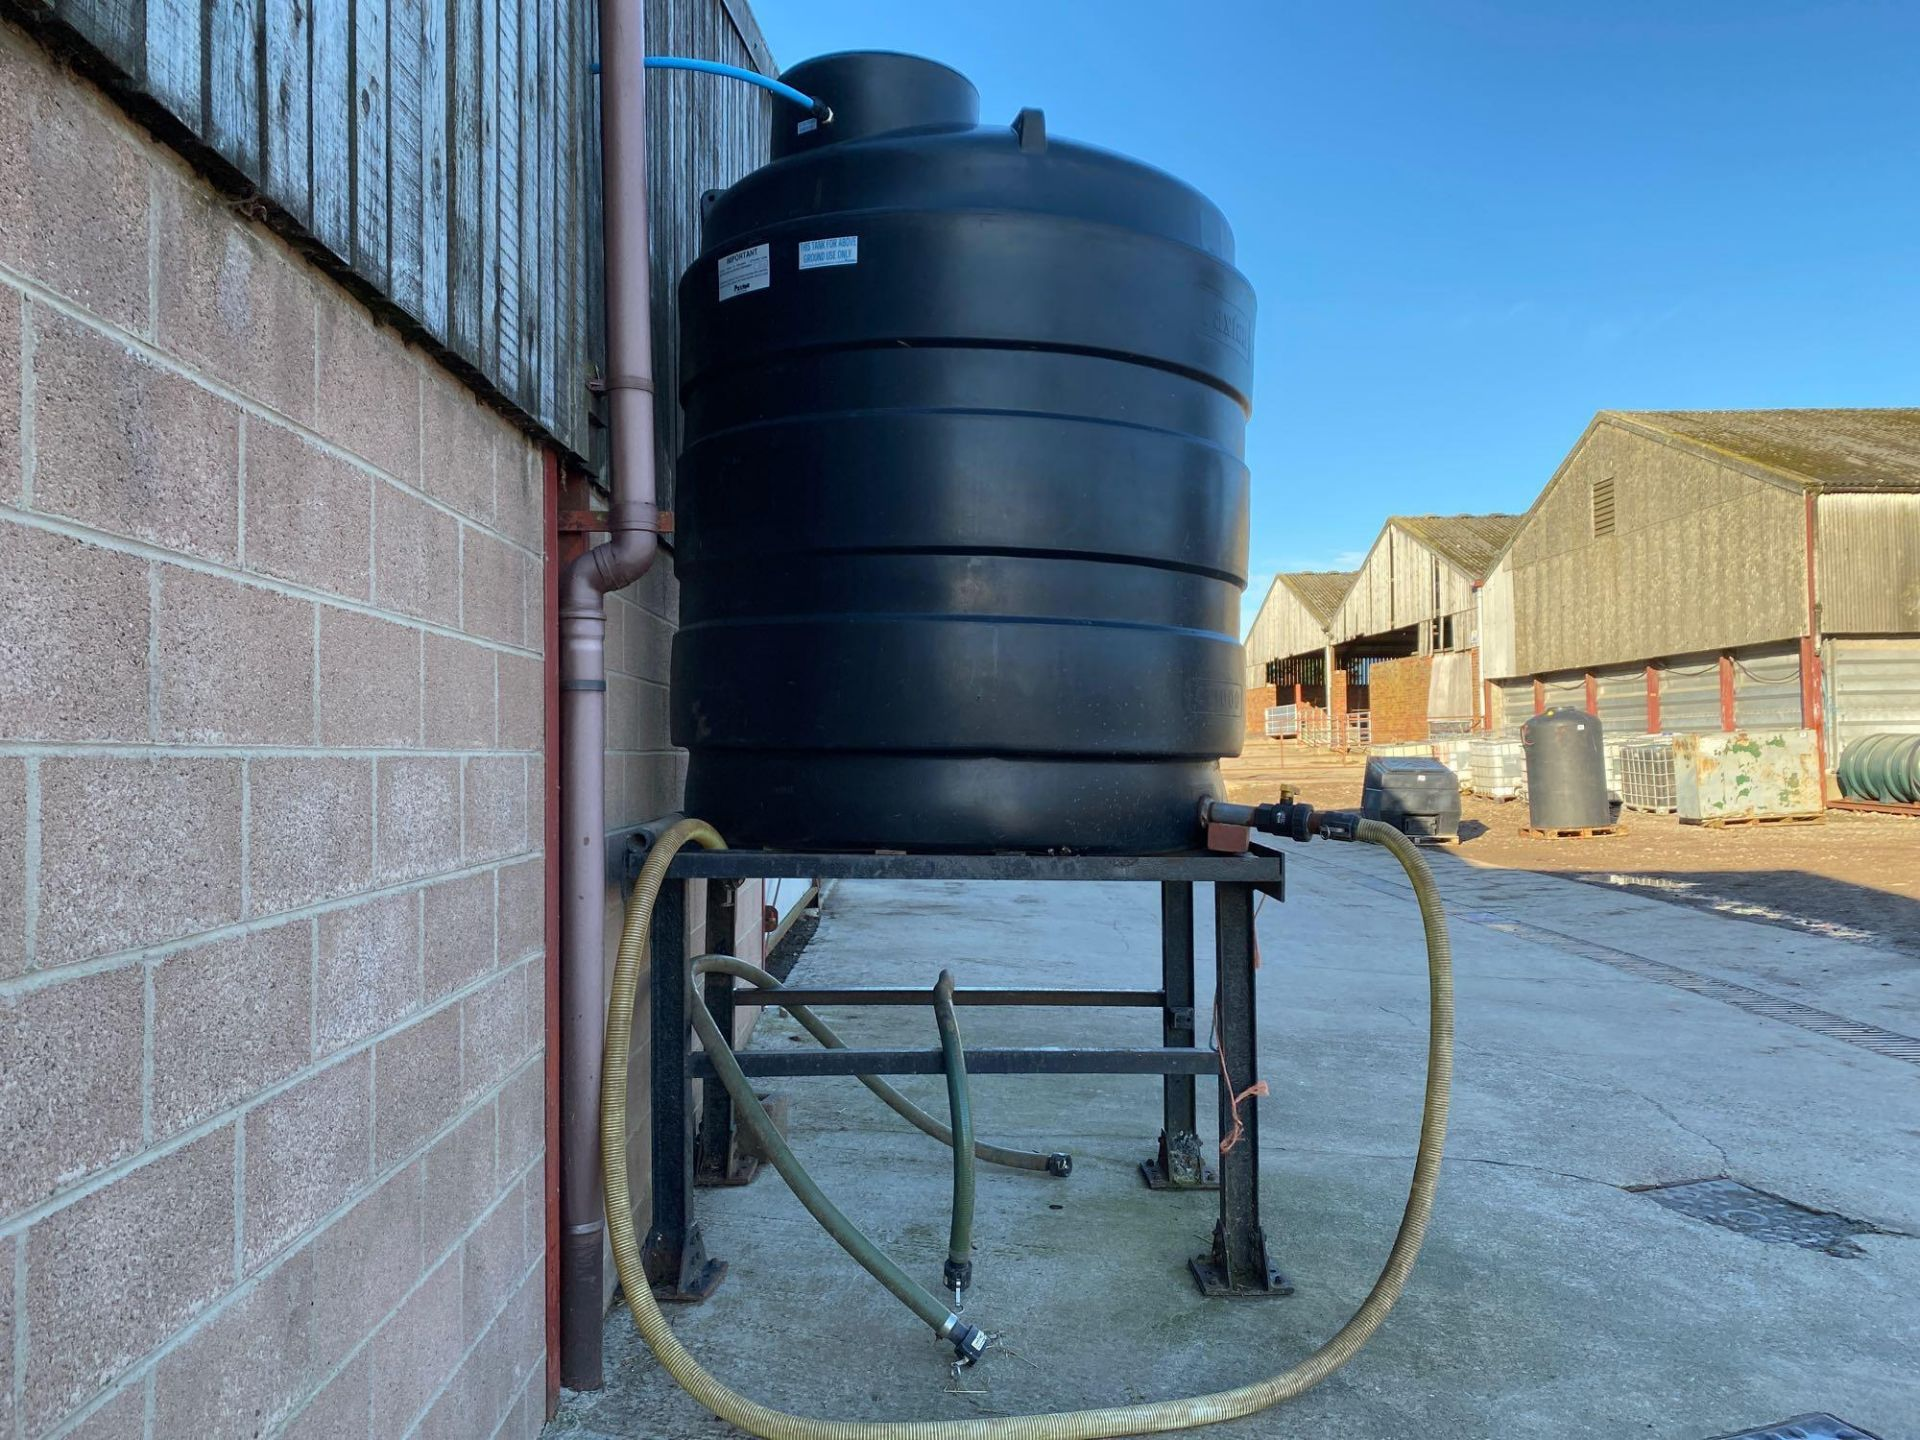 Paxton CT1000 water tank with metal stand - Image 2 of 2